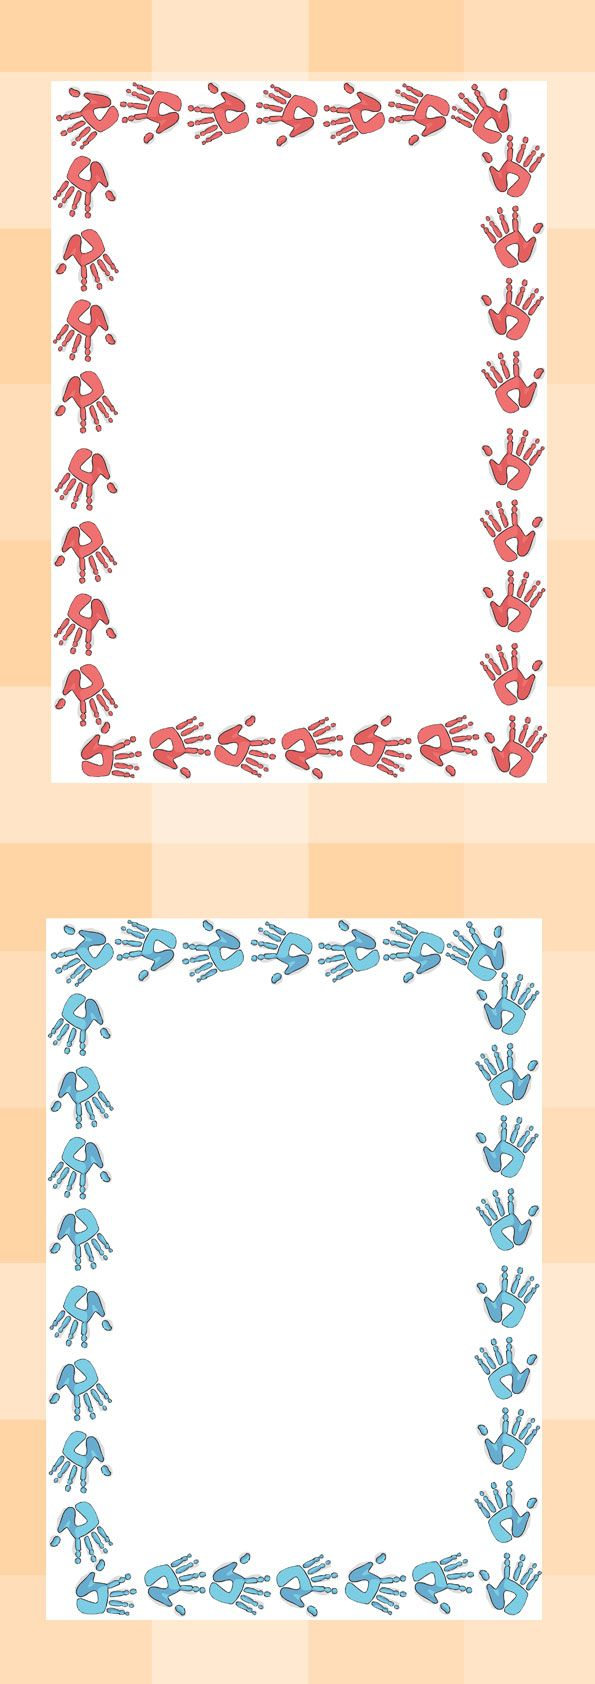 Twinkl Resources >> Handprint Page Borders >> Thousands of printable primary teaching resources for EYFS, KS1, KS2 and beyond! page border, border, writing template, writing aid, handprint, footprint, all about me, ourselves, foot, print, hand,